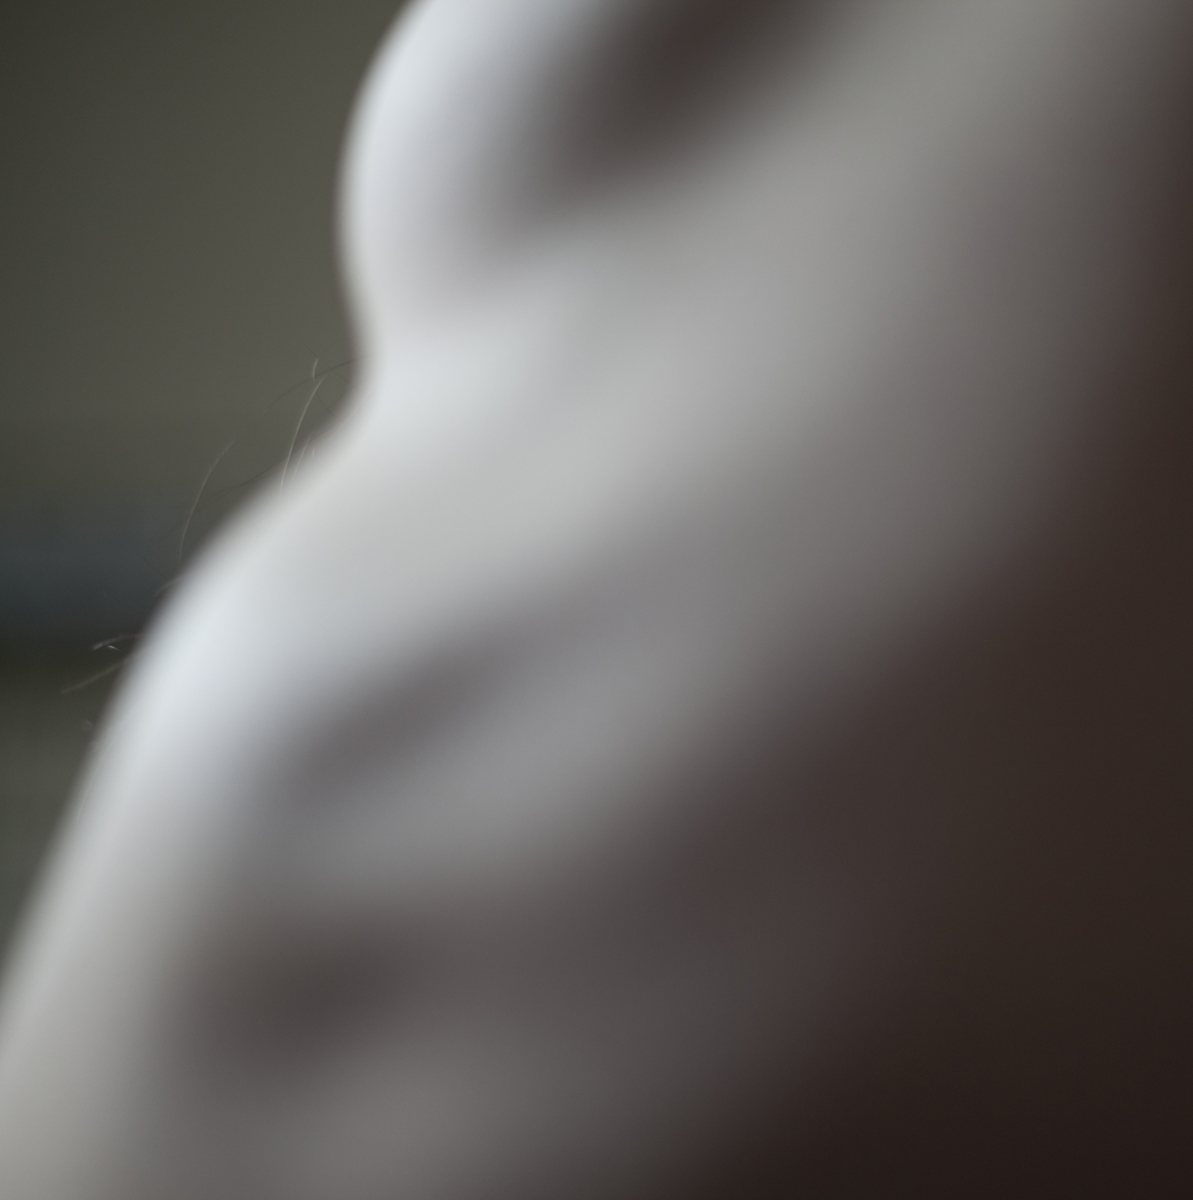 abstract body shape focusing on the body hair